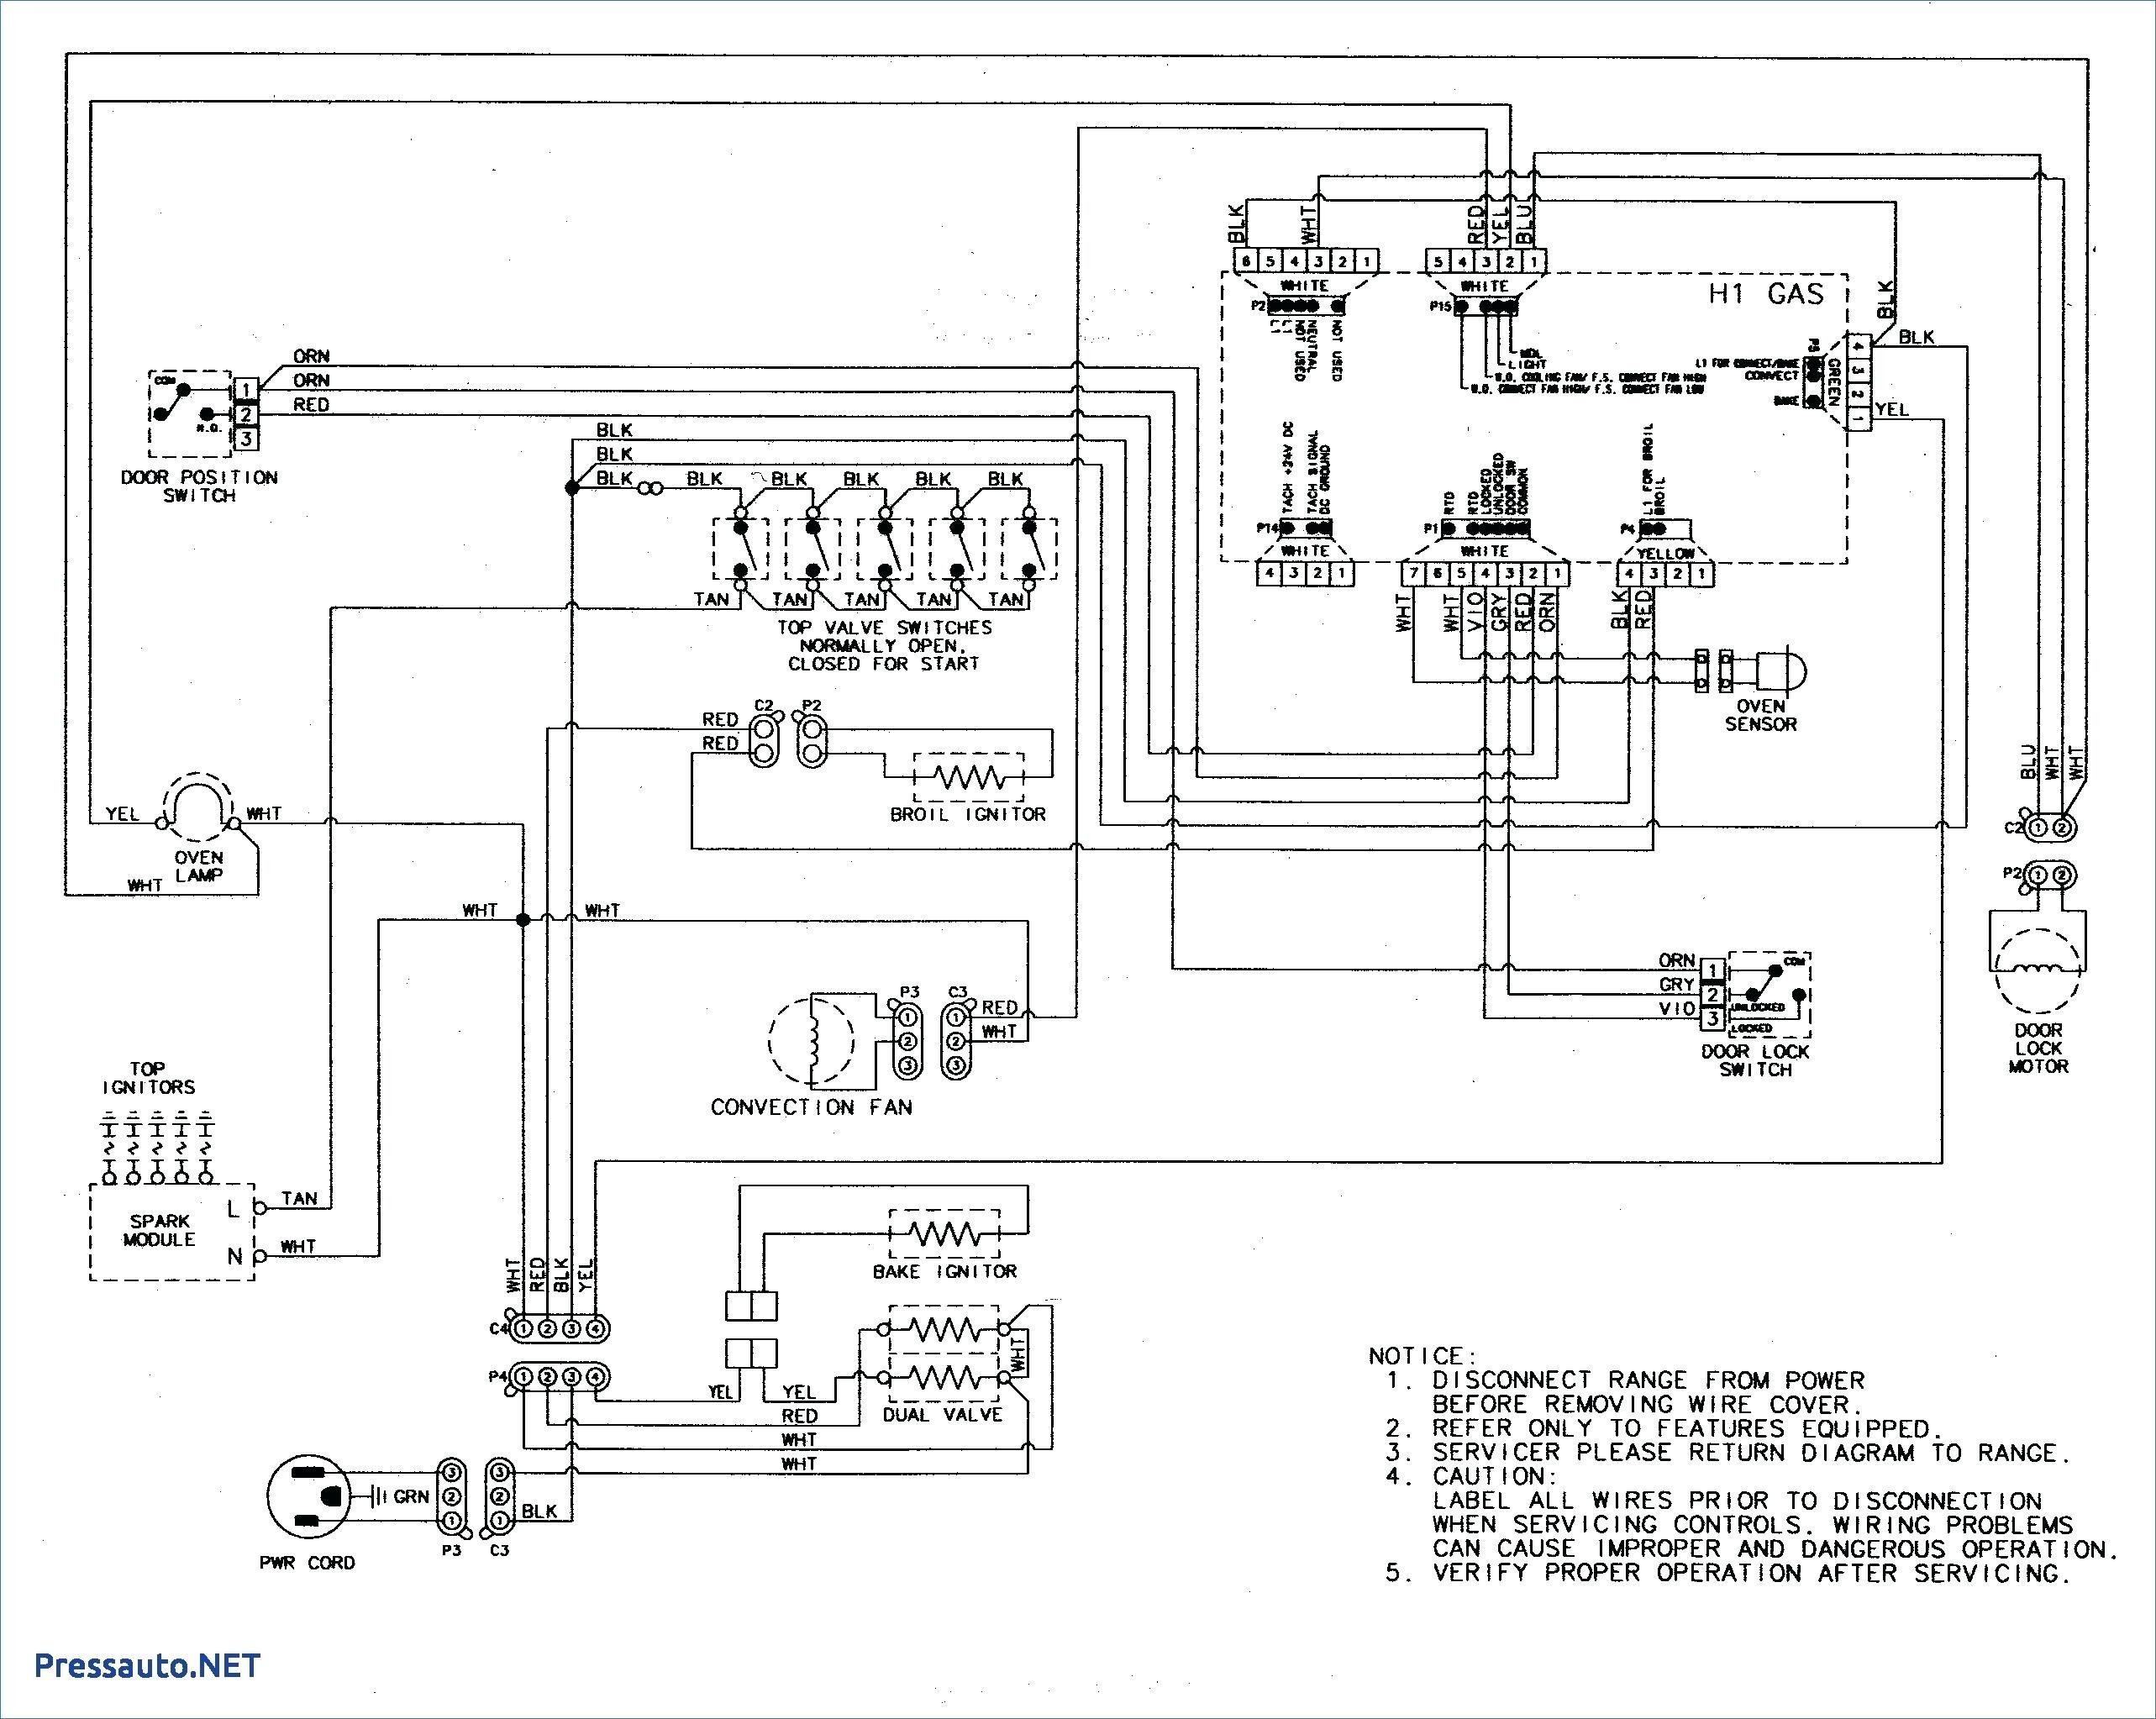 Car Ac Working Diagram Car Diagram Car Diagram Wiring for Auto Air  Conditioning New Pdf Of